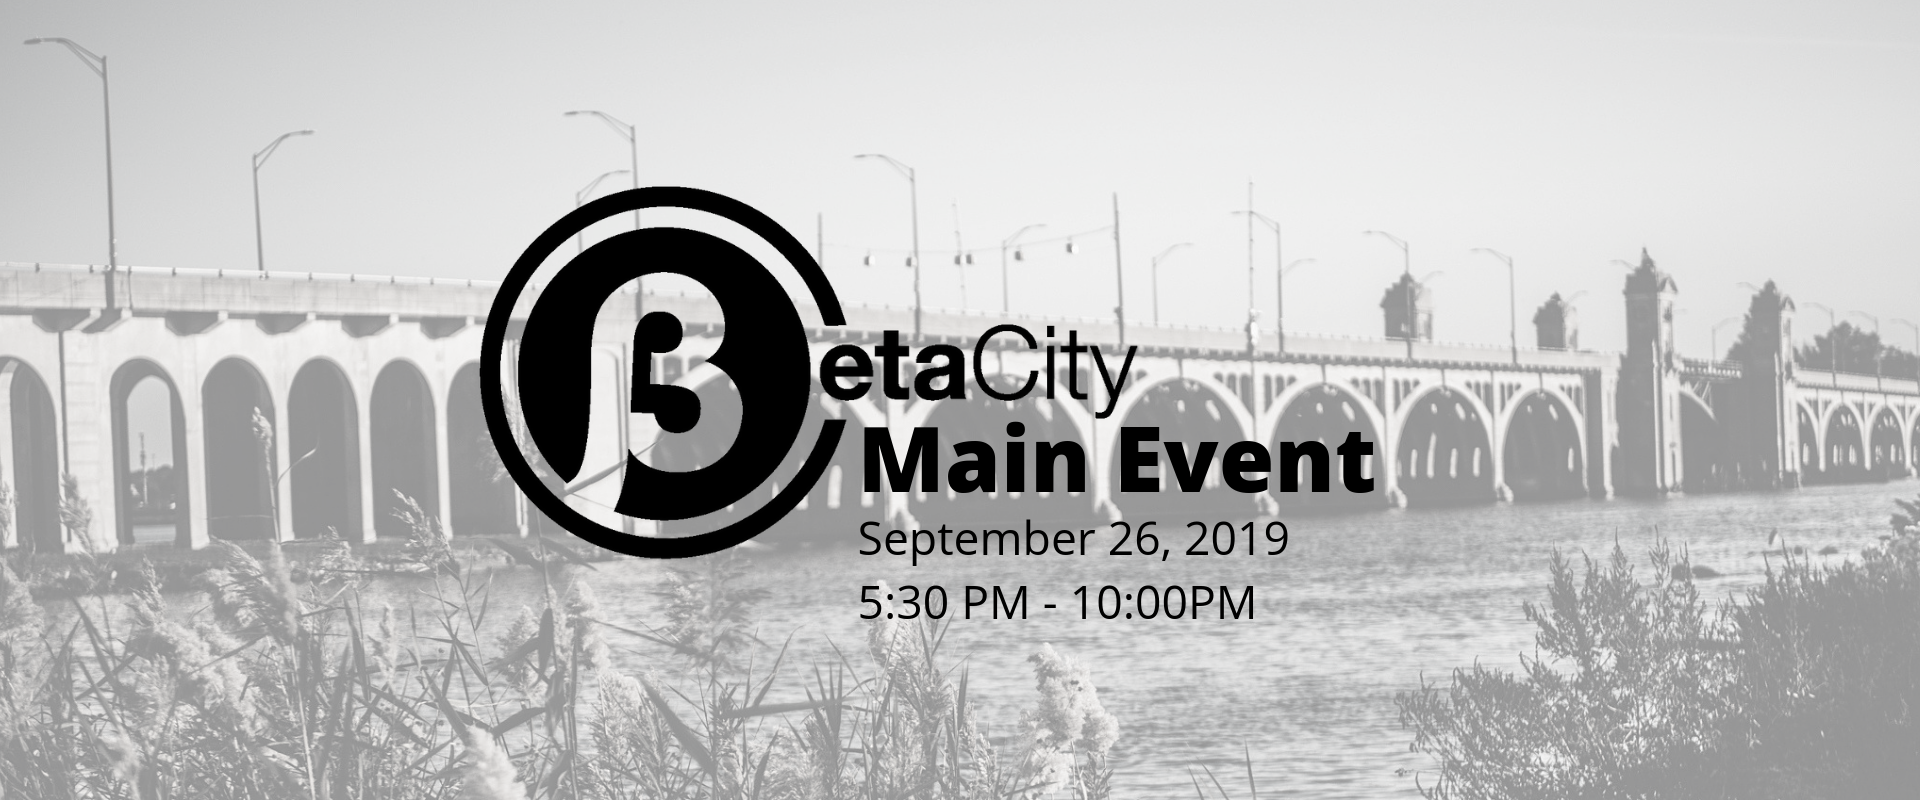 Beta City Main Event